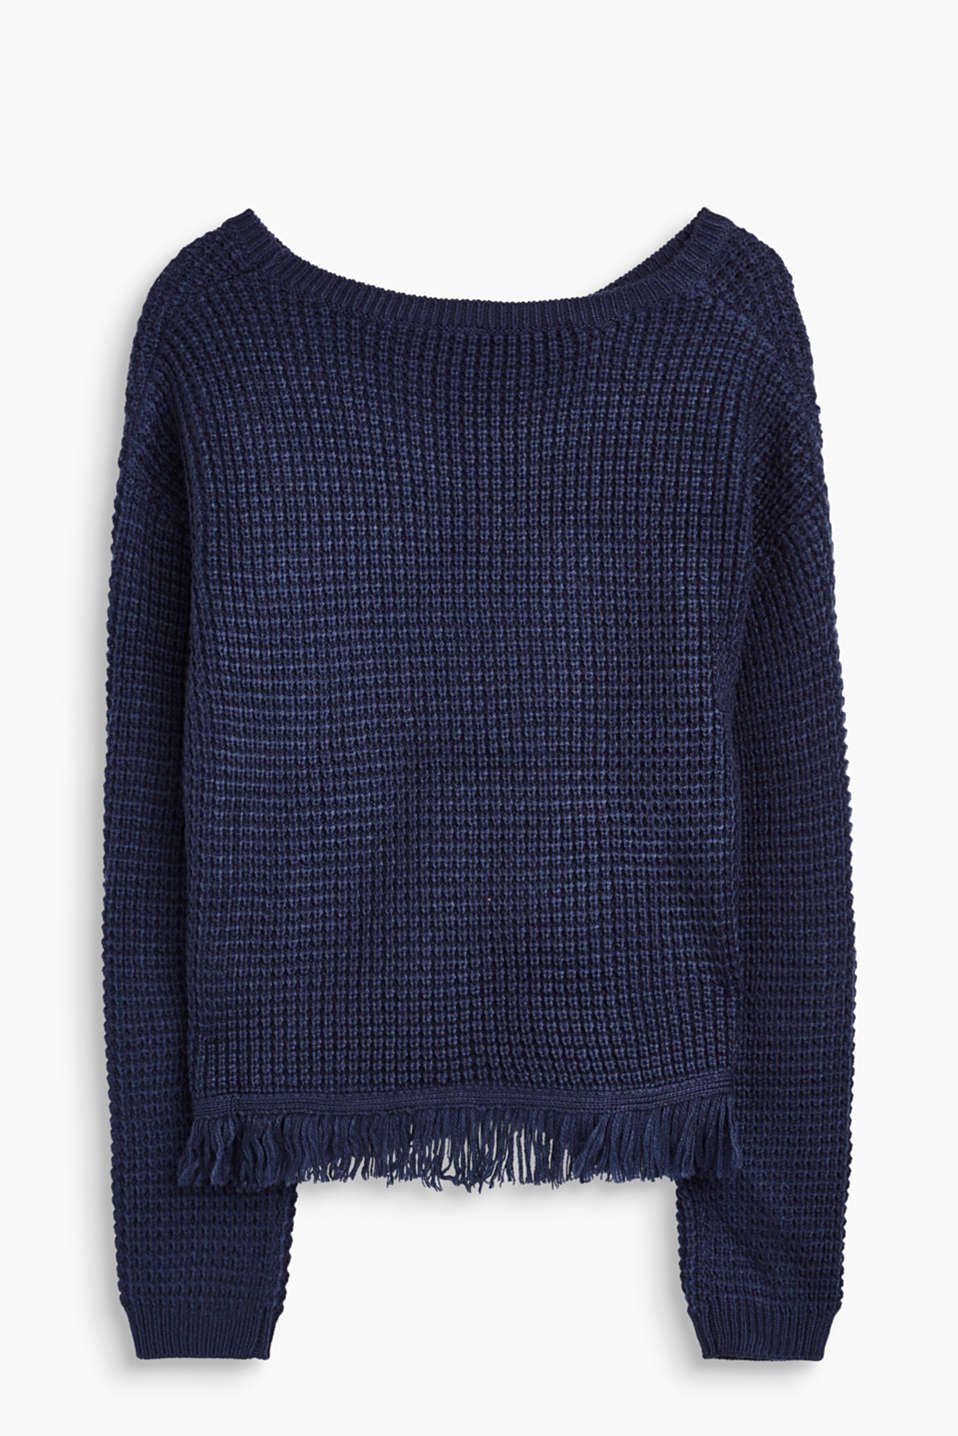 Textured jumper with fringing